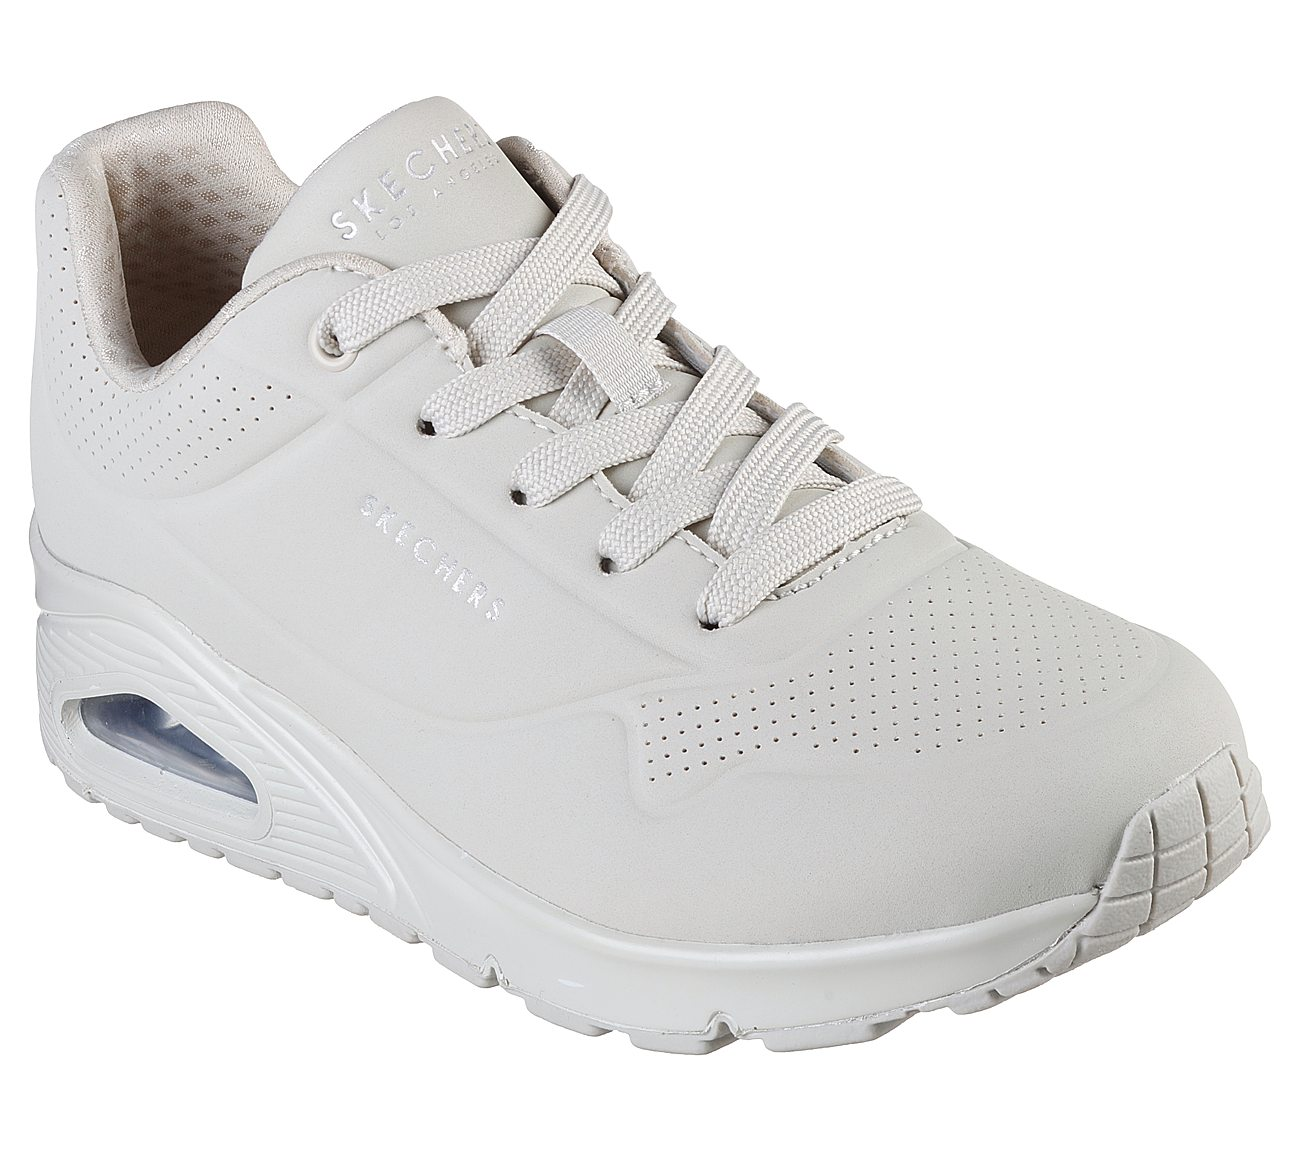 Buy Skechers Uno Stand On Air Skecher Street Shoes